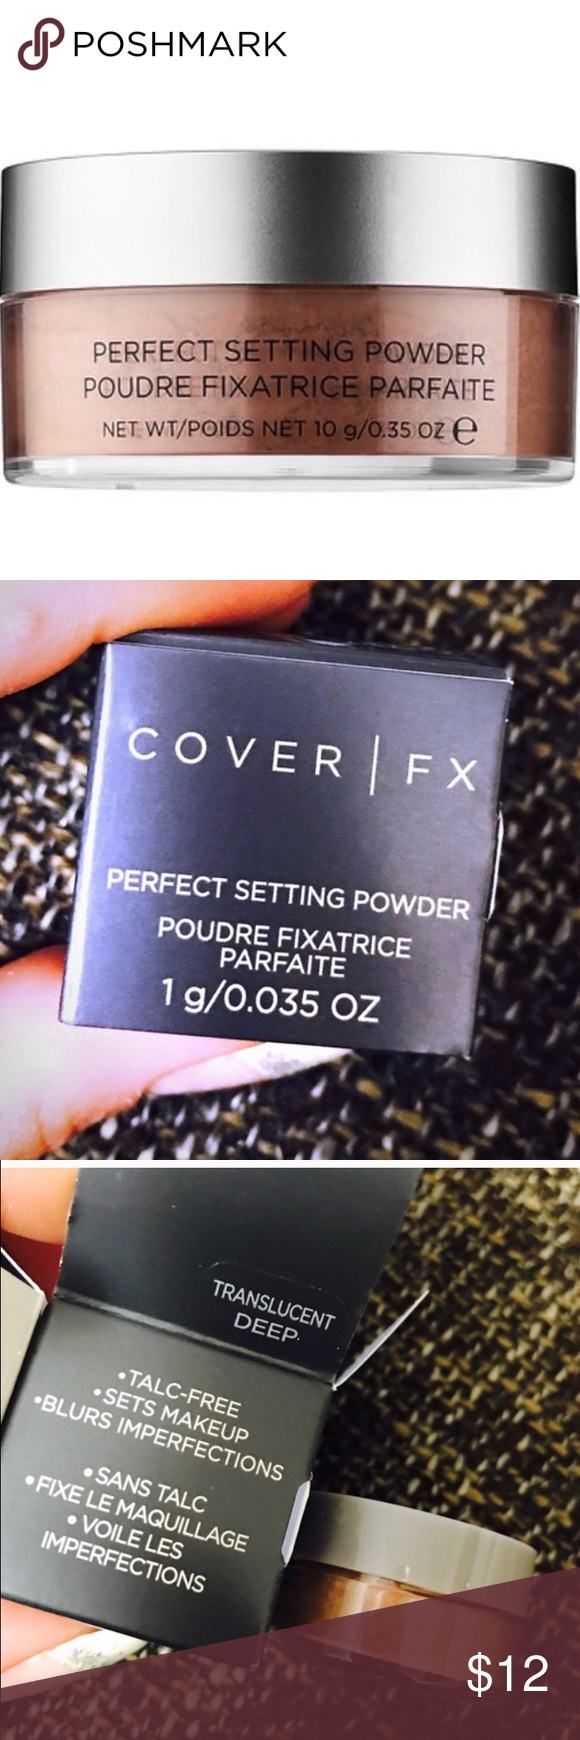 Cover FX Perfect Setting Powder Brand new deluxe sized (0.035 oz) - Cover FX Perfect Setting Powder in shade - deep , in original box , never been opened or used , fast shipping Sephora Makeup